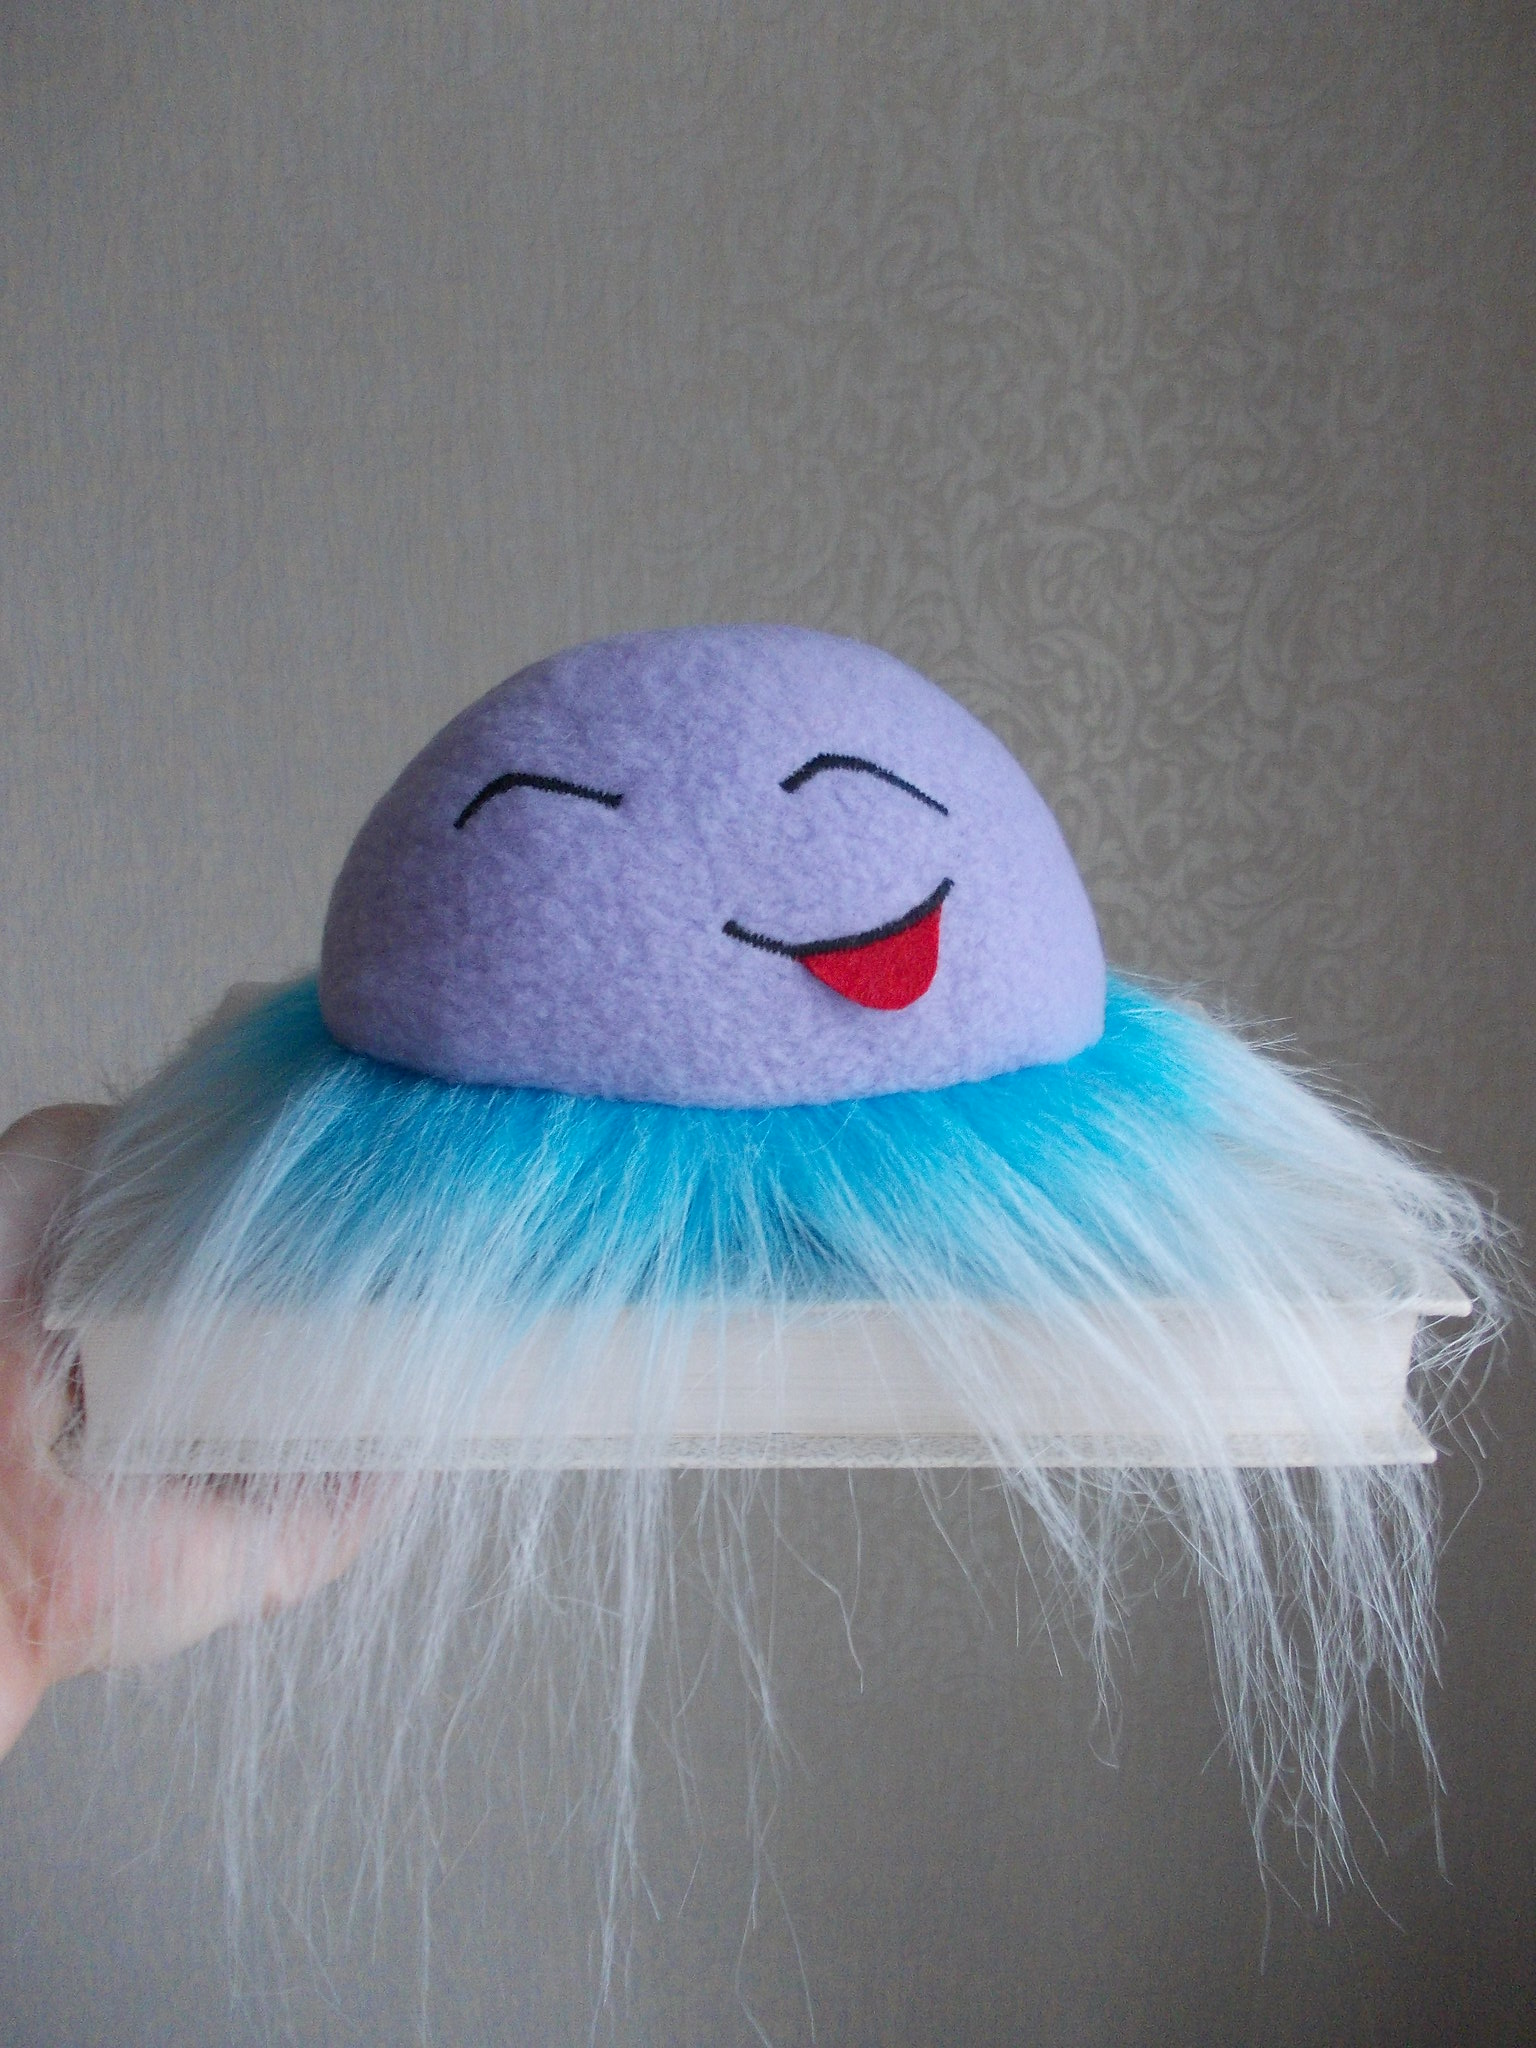 jellyfish, stuffed toys, plush toys, stuffed animals, baby toys, fluffy toys, personalised toys, name toys_17